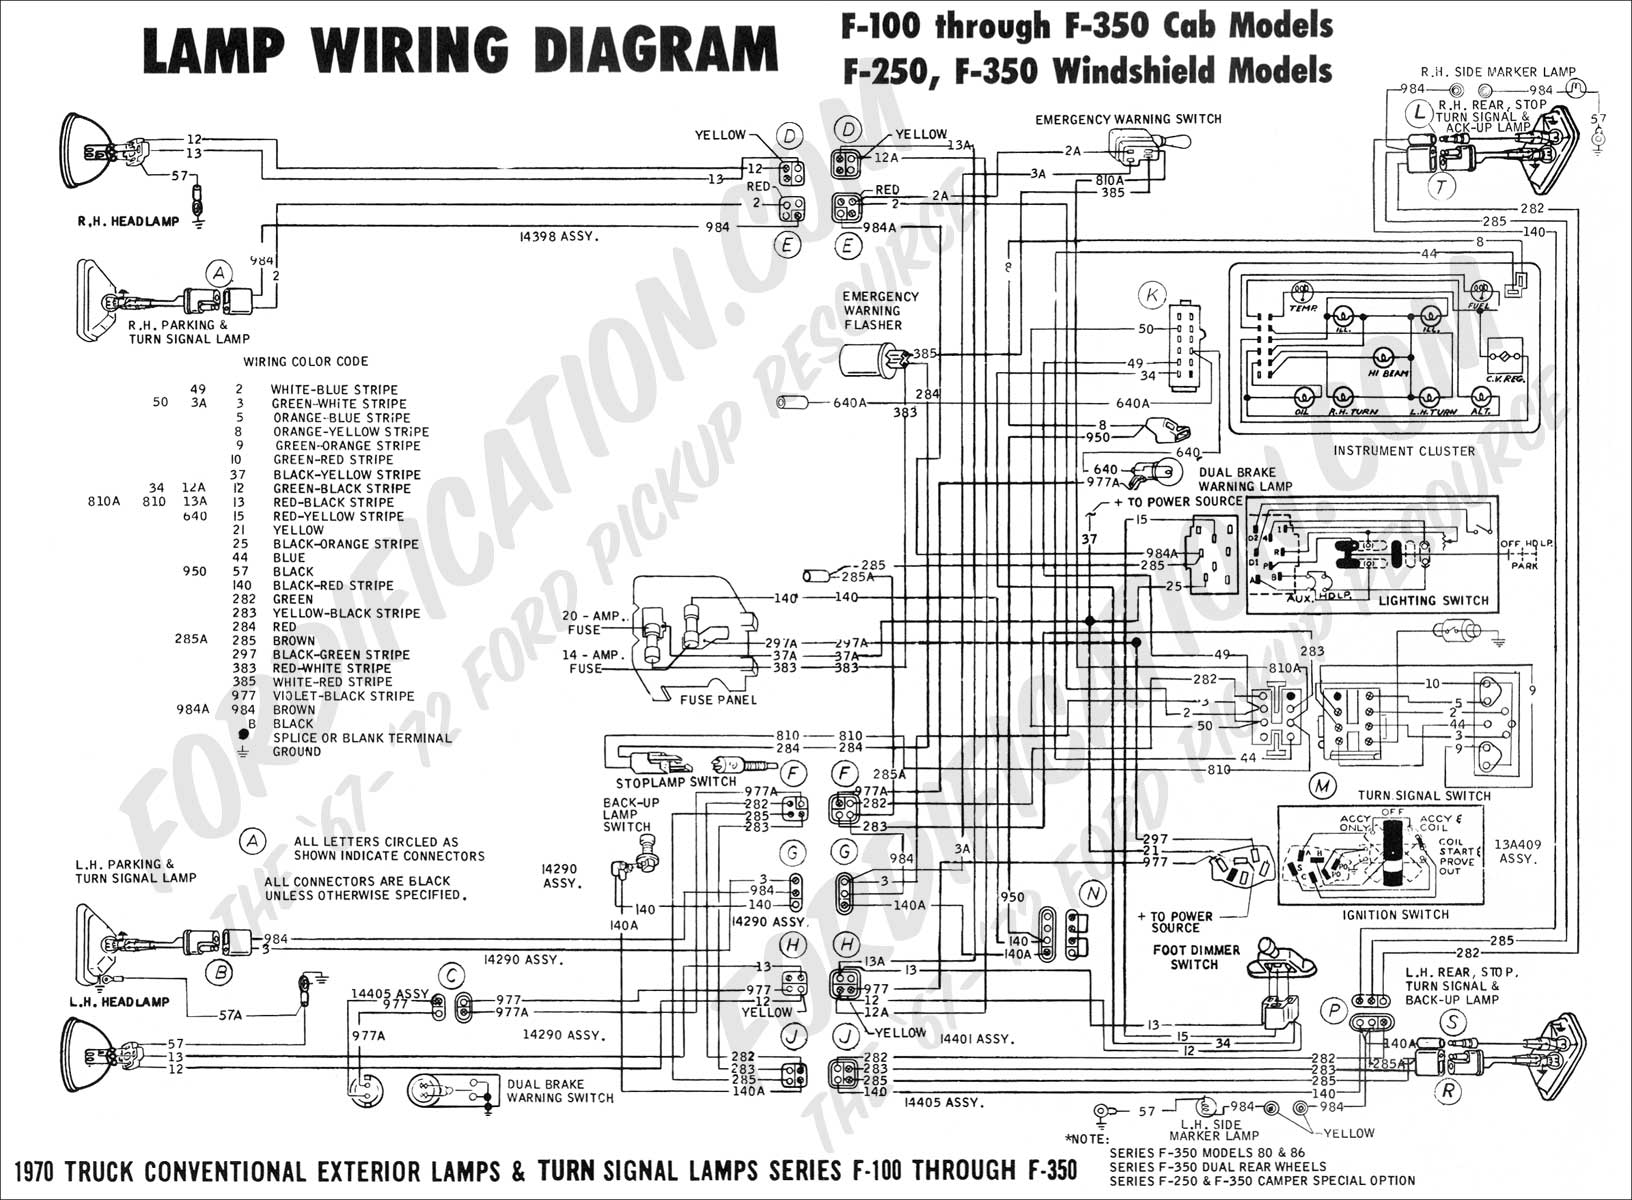 Ford Cargo Wiring Diagram Archive Of Automotive 1964 Impala Tail Light 1976 F700 Dash Schematics Rh Thyl Co Uk